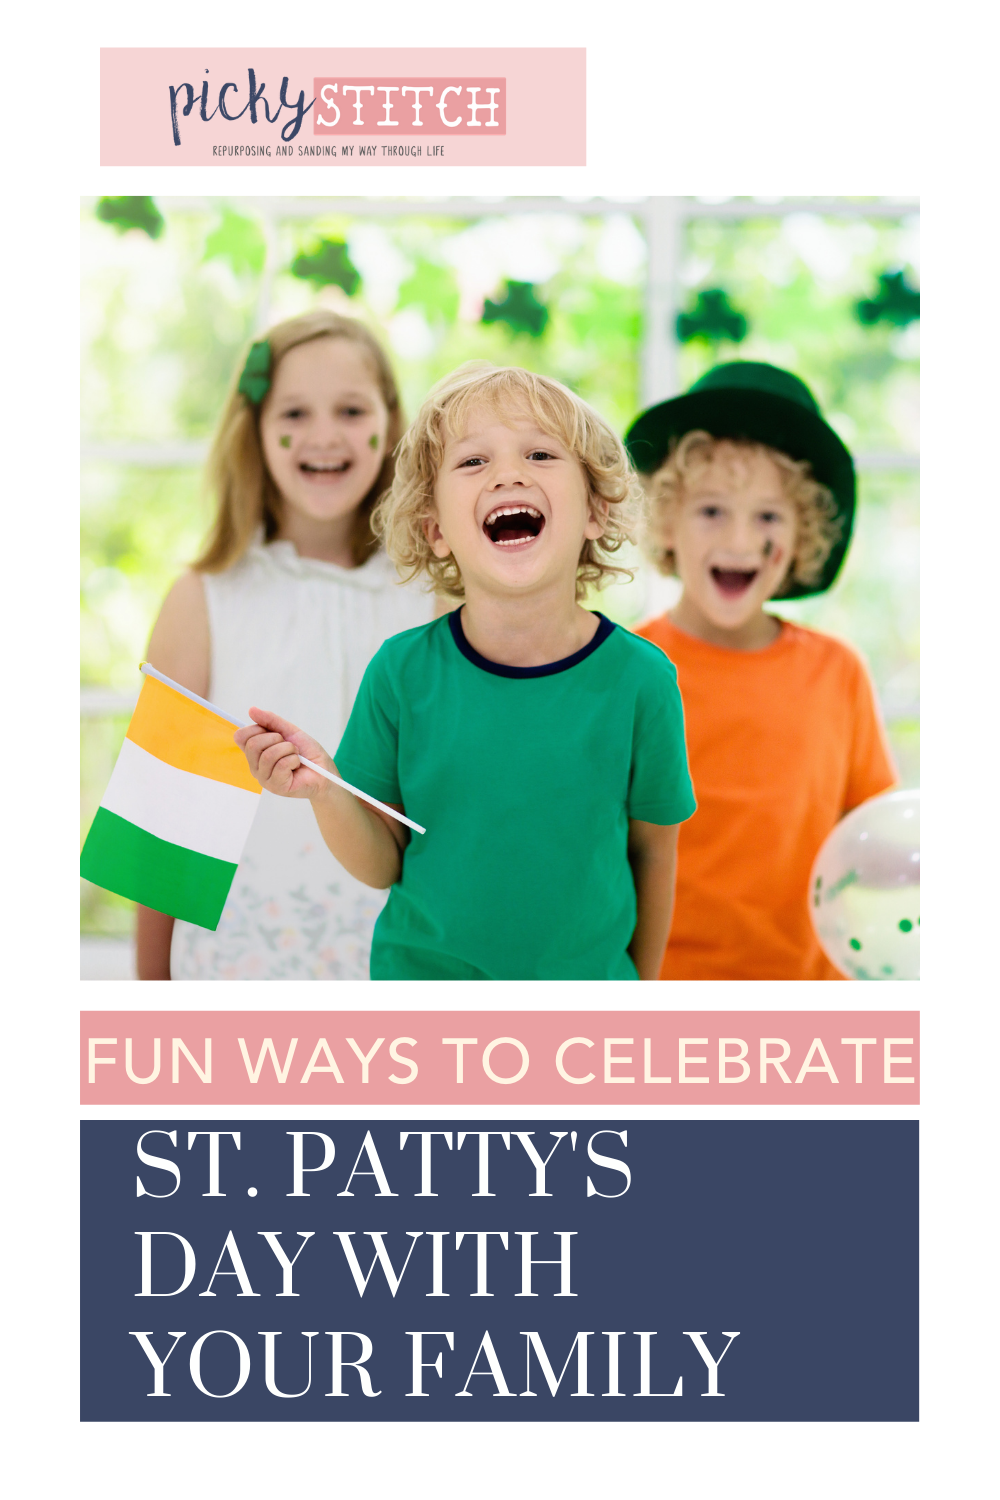 Pickystitch.com has loads of creative, family-friendly ideas. From projects to parties, find fun ways to spend time with your fam. This St. Patrick's Day, keep everyone entertained with these fun celebration ideas.